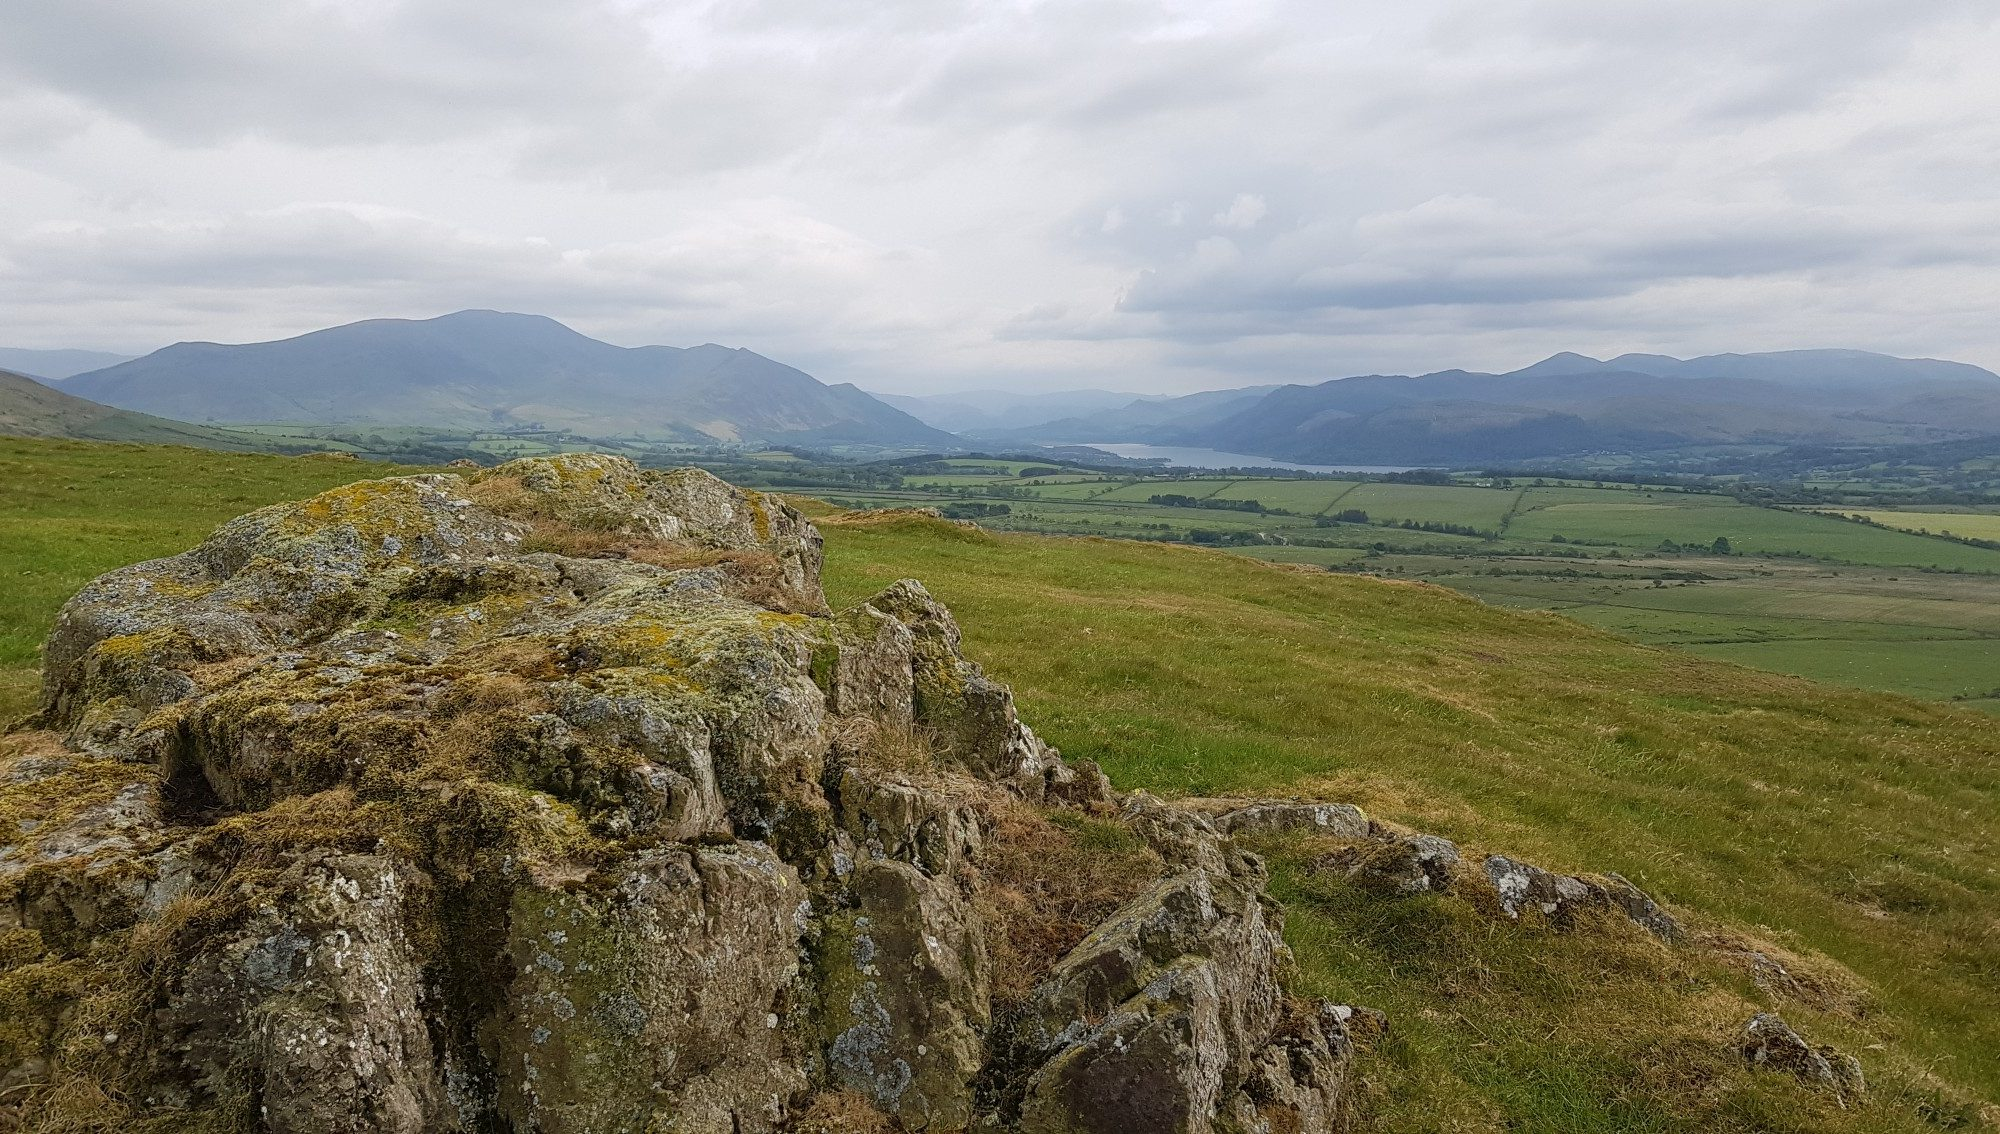 View from the summit of Caermote Hill in the Lake District